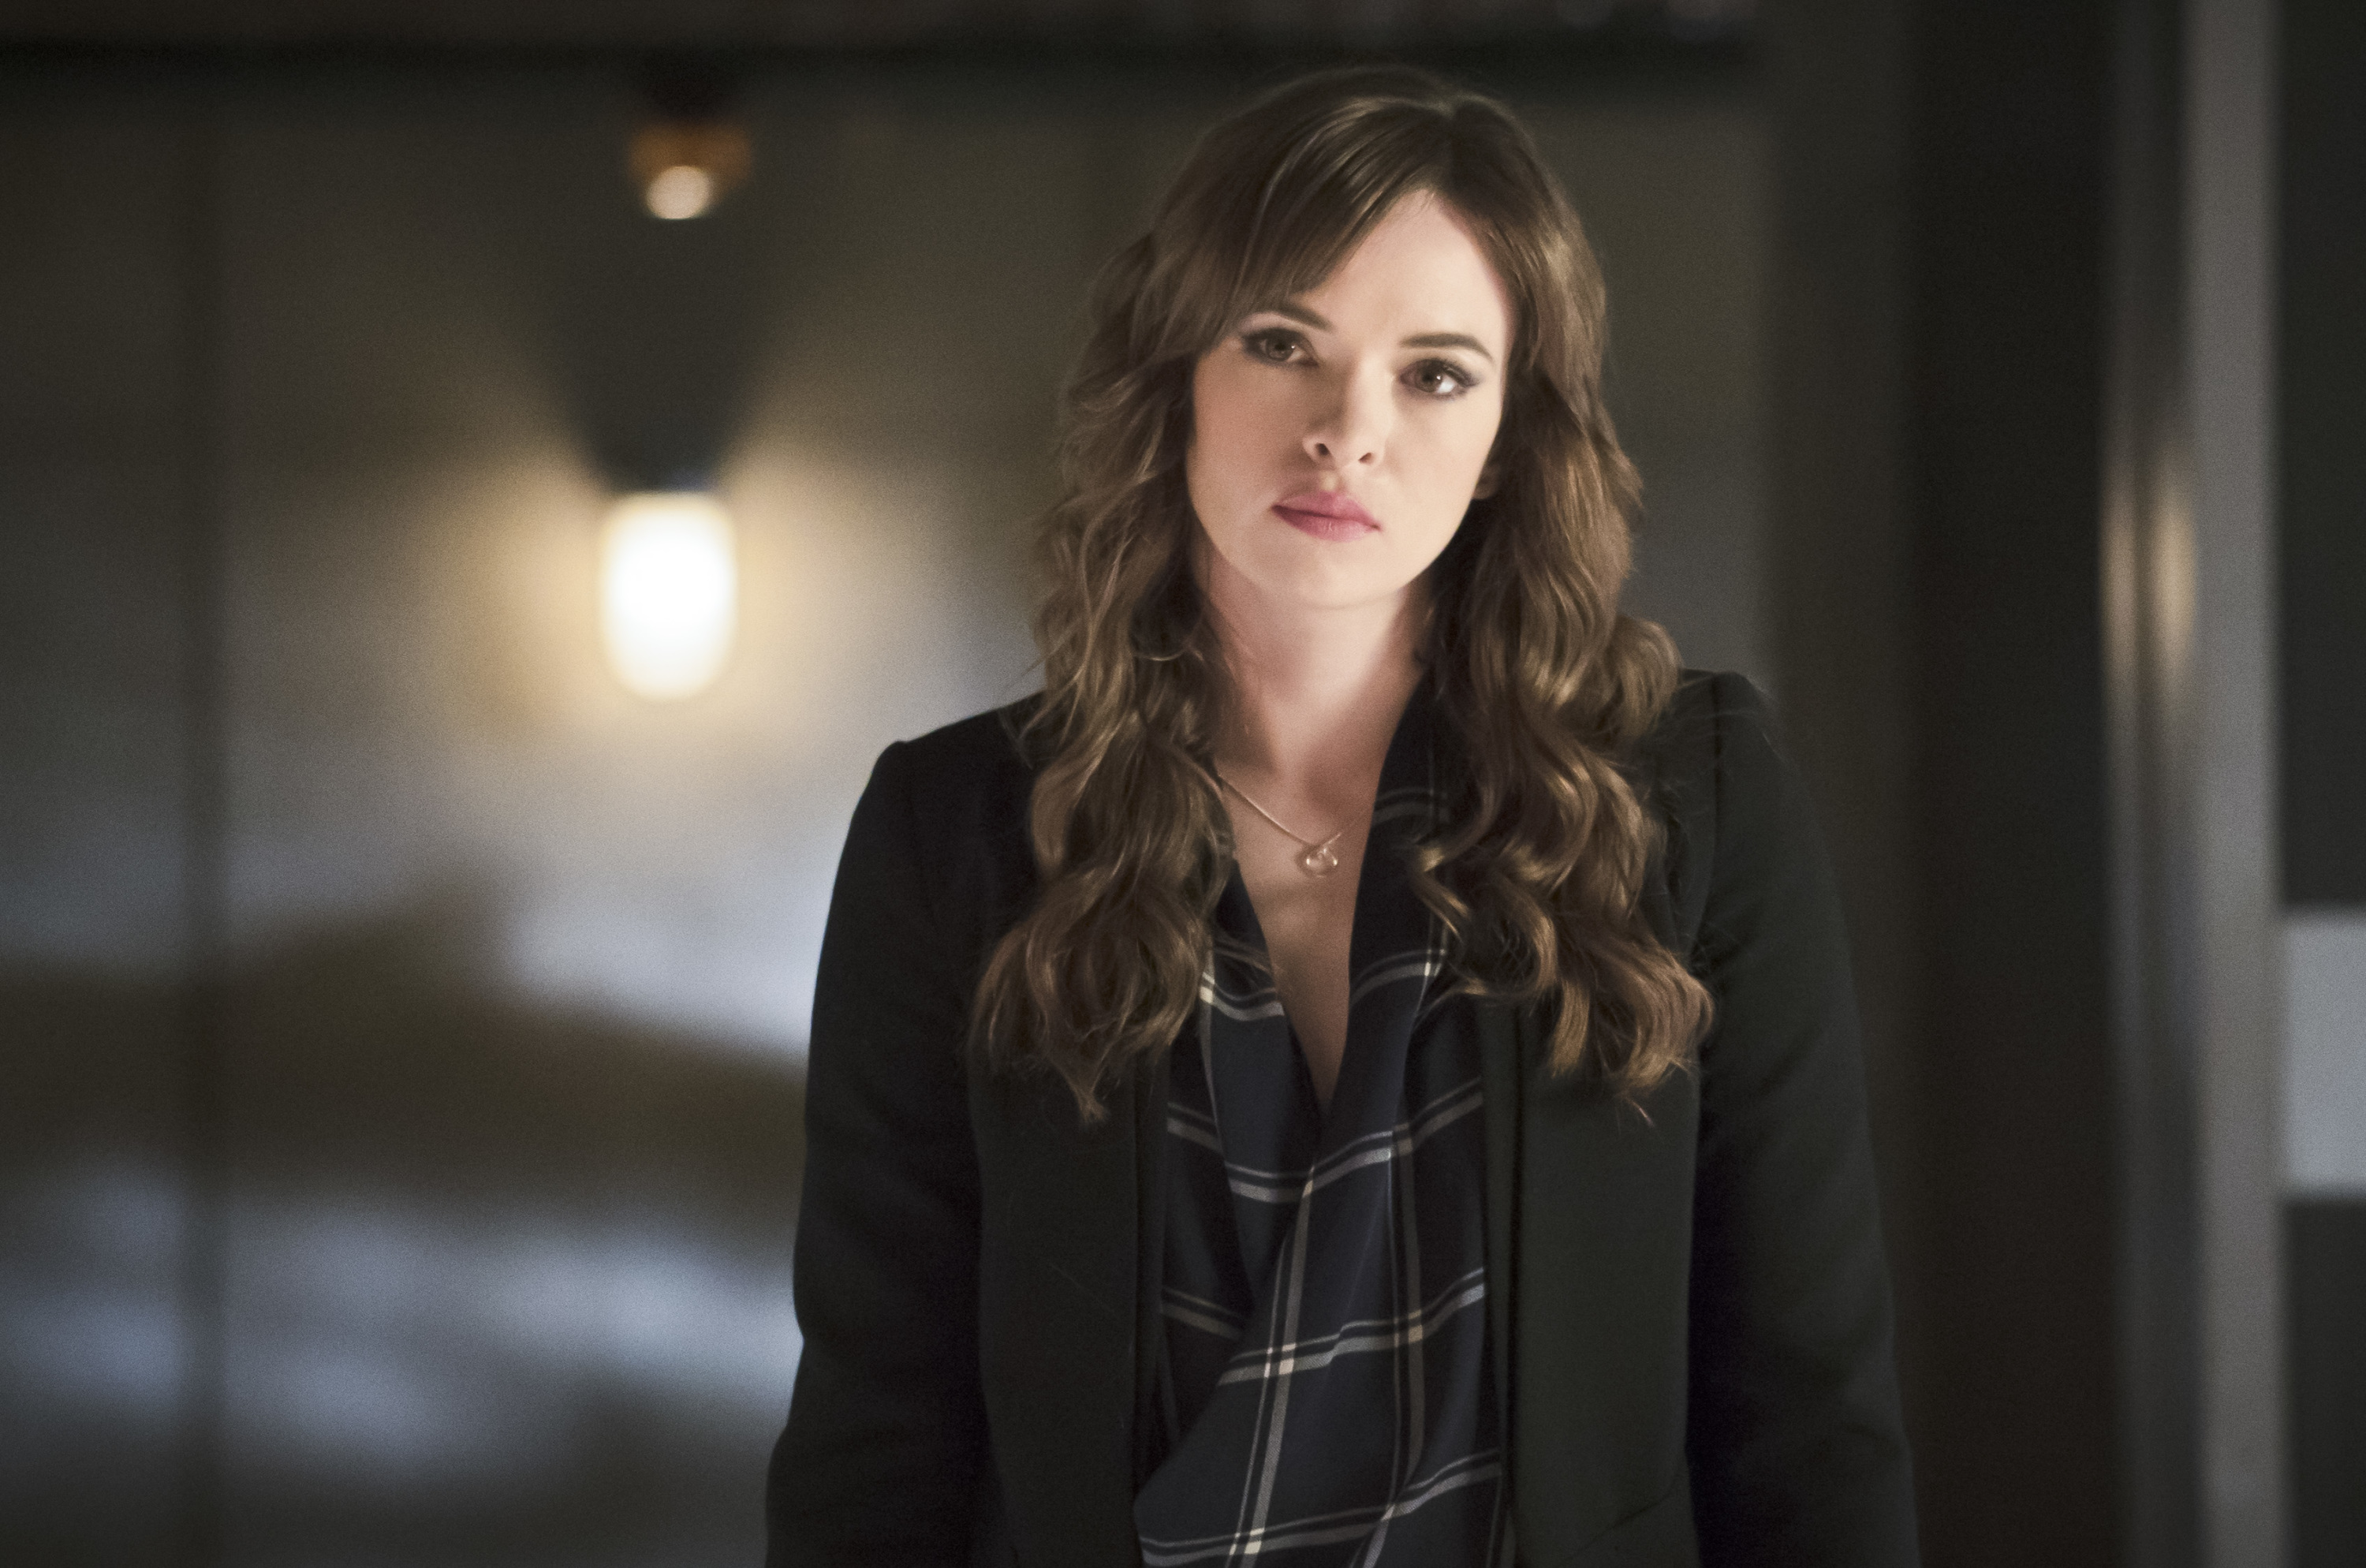 Group Of Danielle Panabaker Wallpaper Forwallpapercom